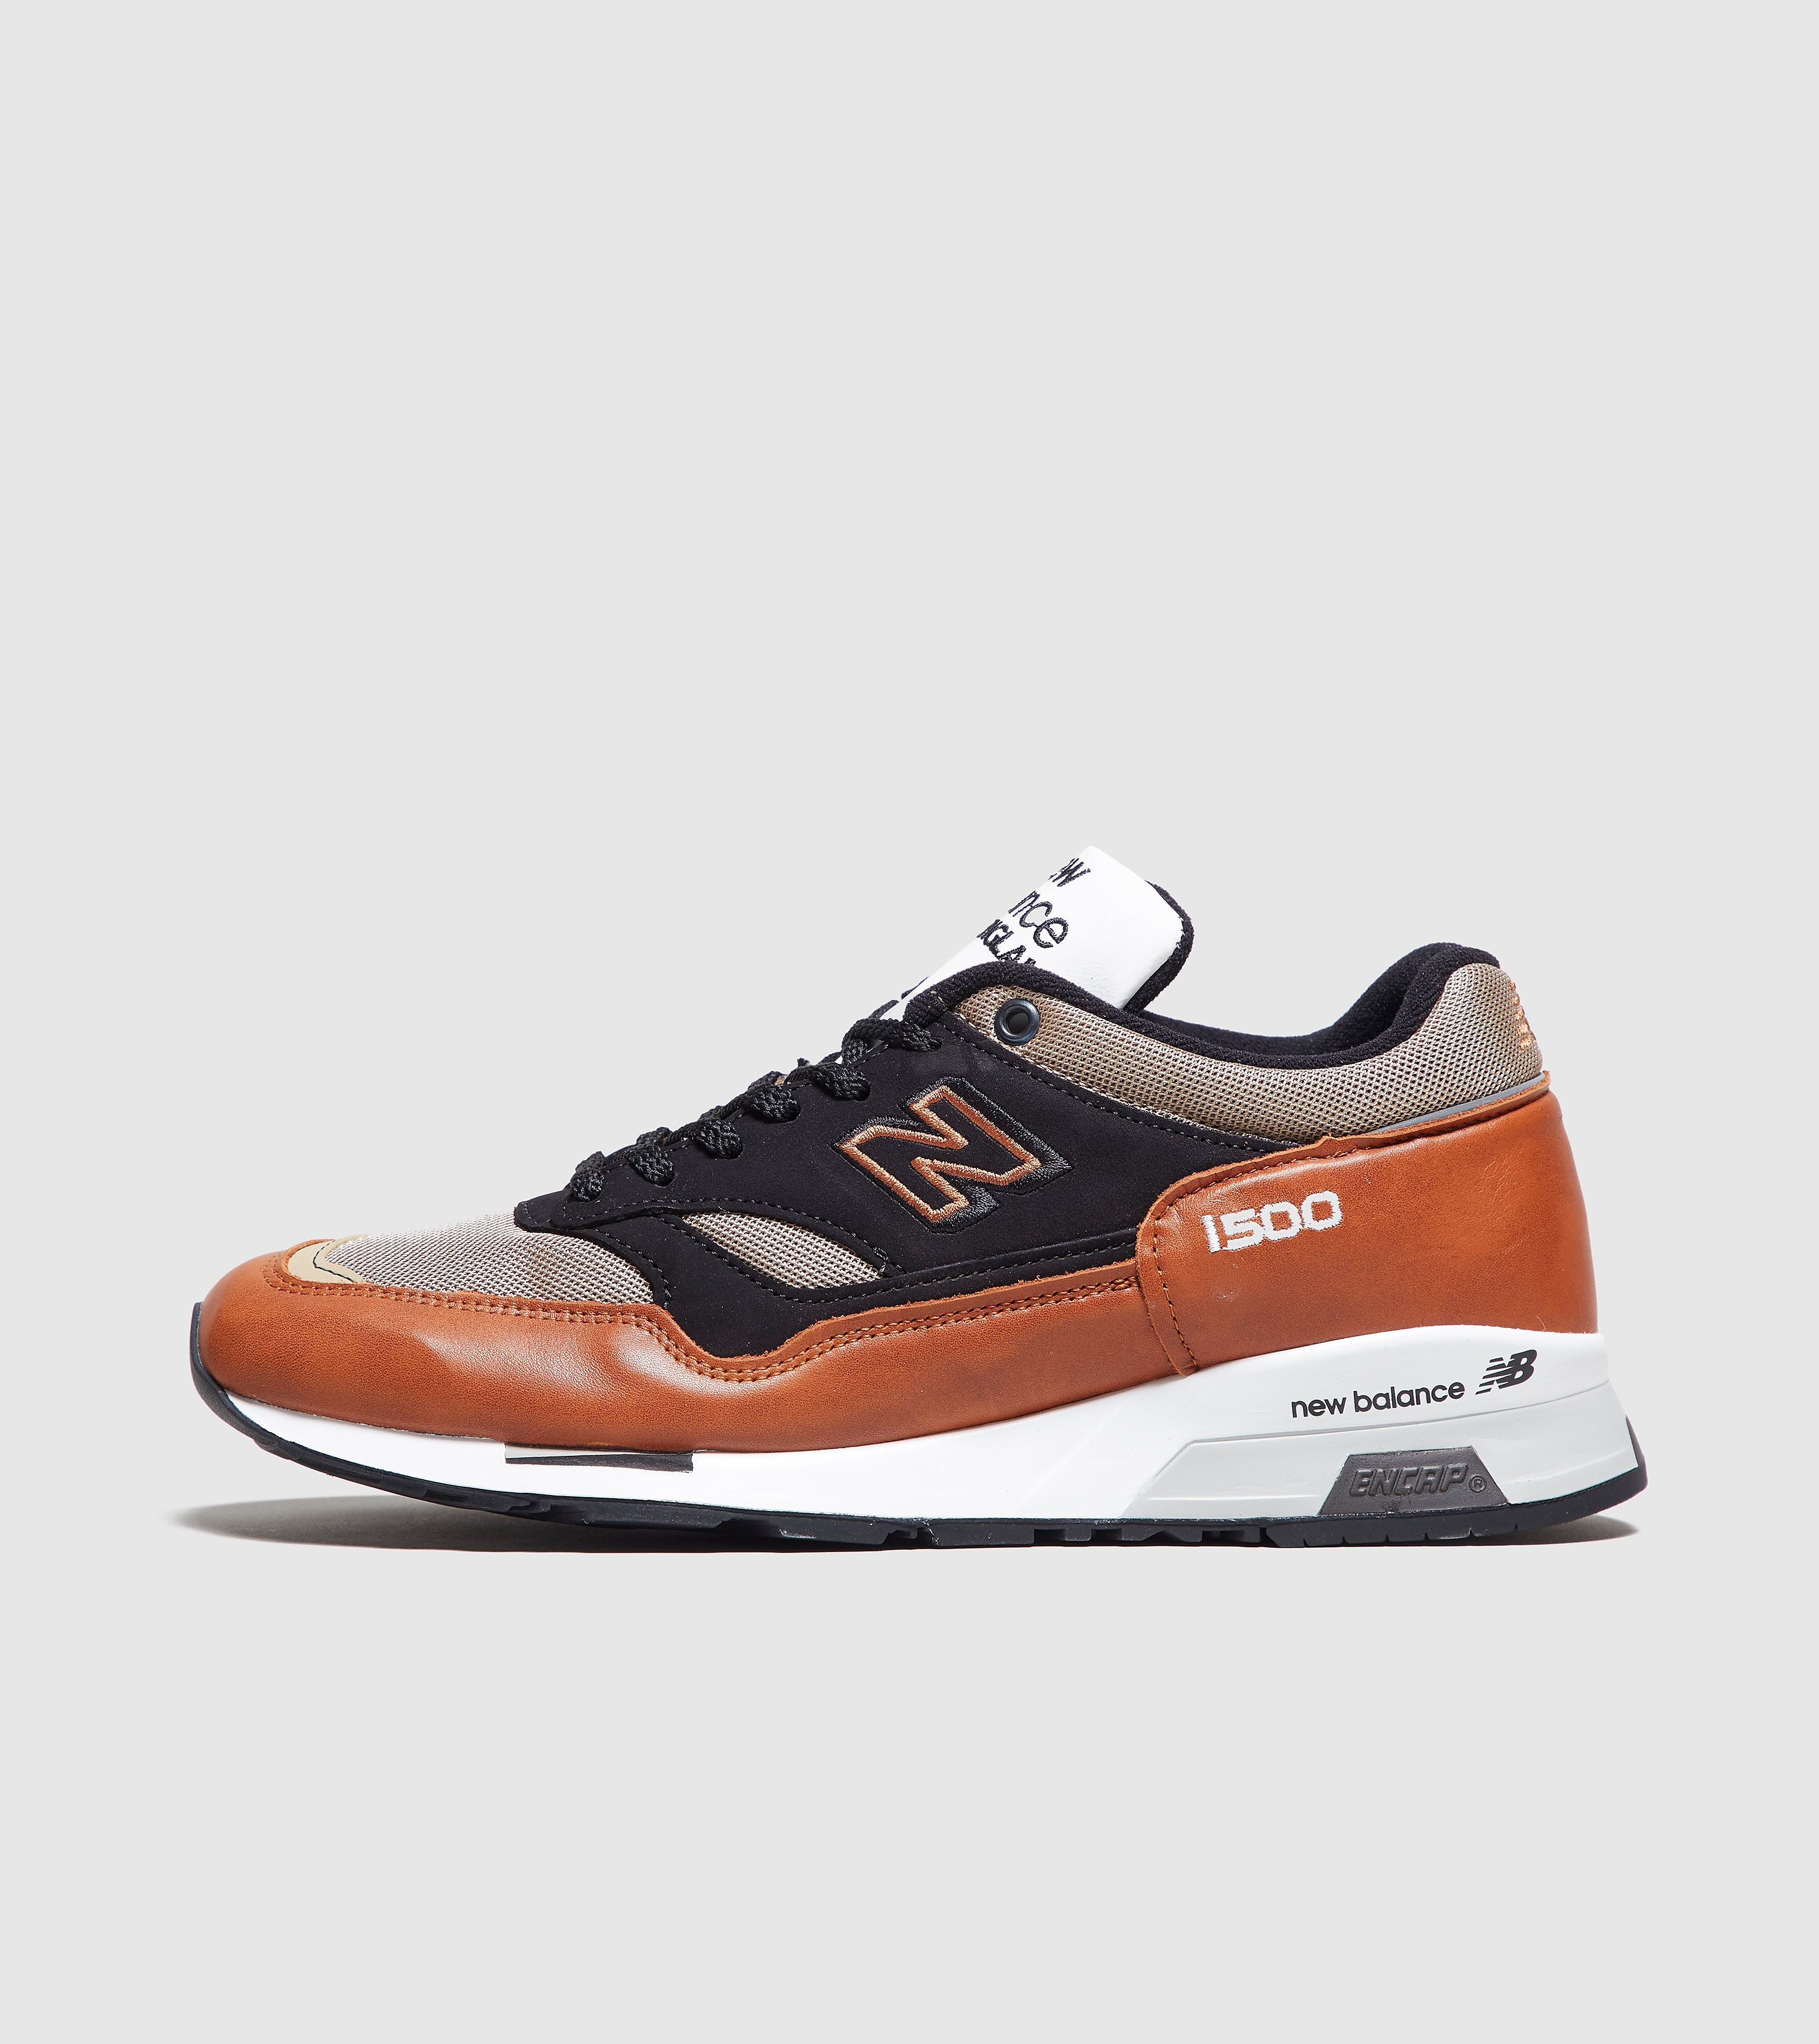 New Balance 1500 - Made in England